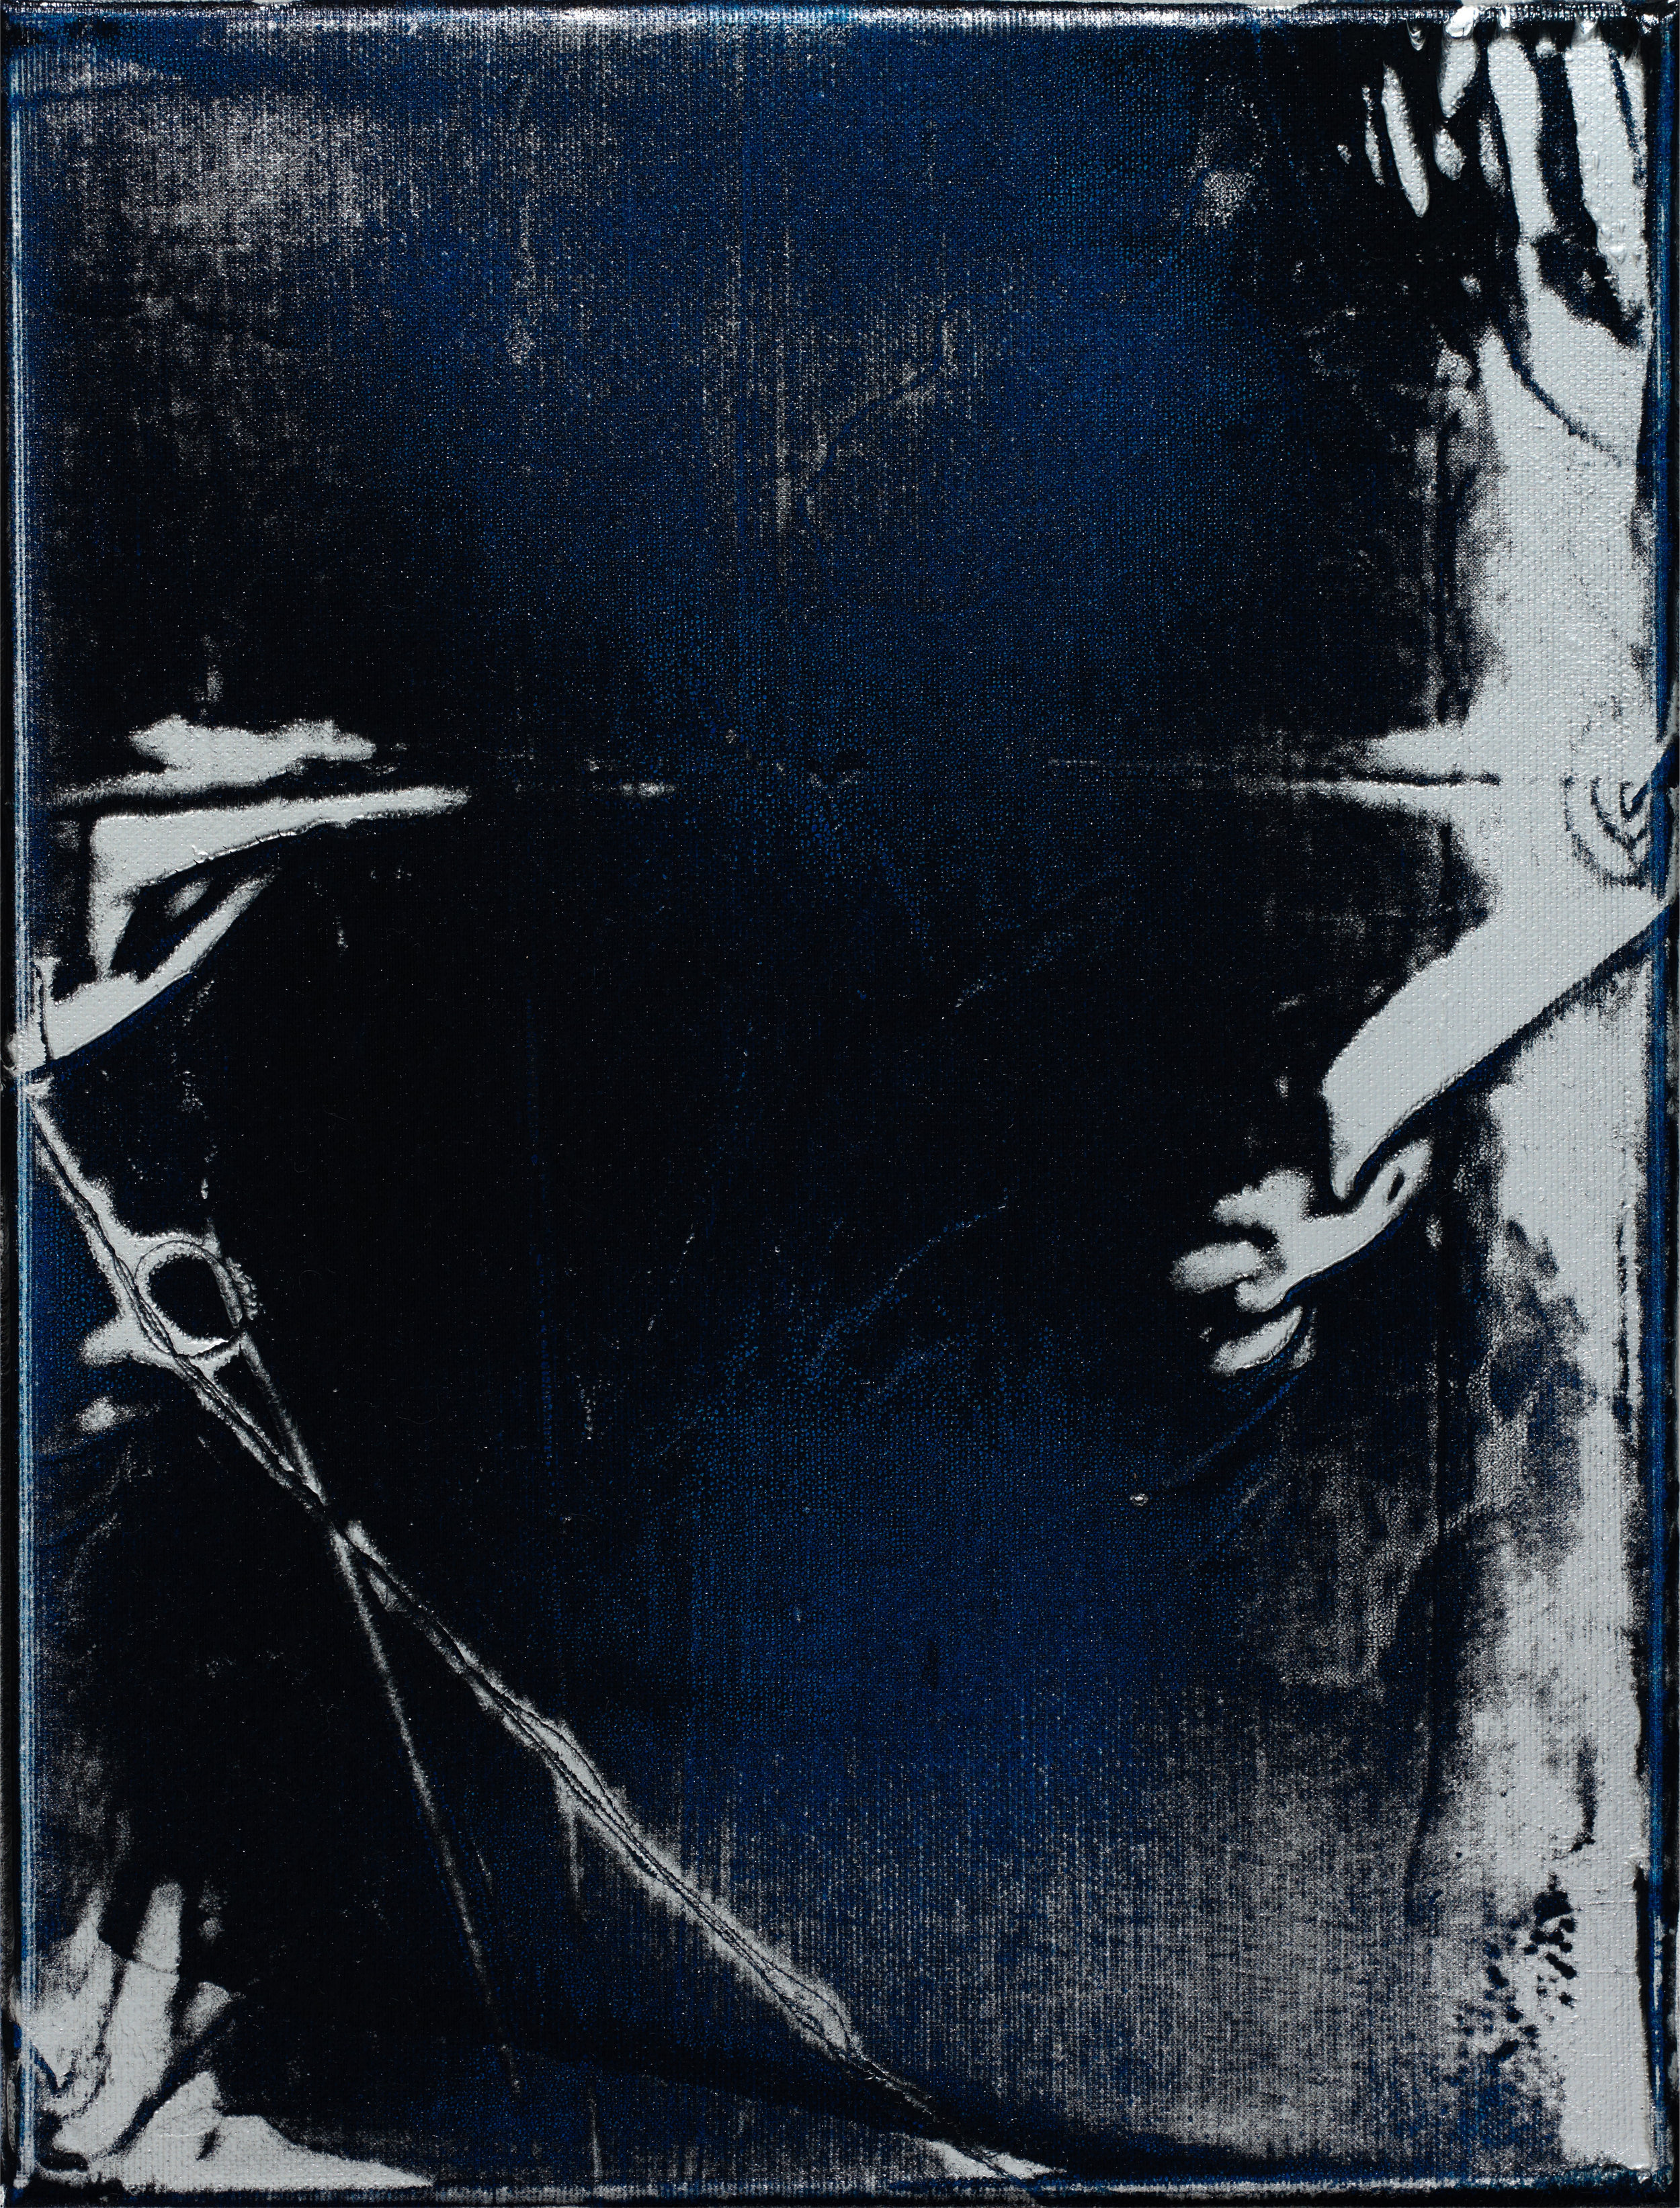 Untitled, 2009 oil and acrylic on canvas 35 x 27 cm - 13 3/4 x 10 5/8 inches